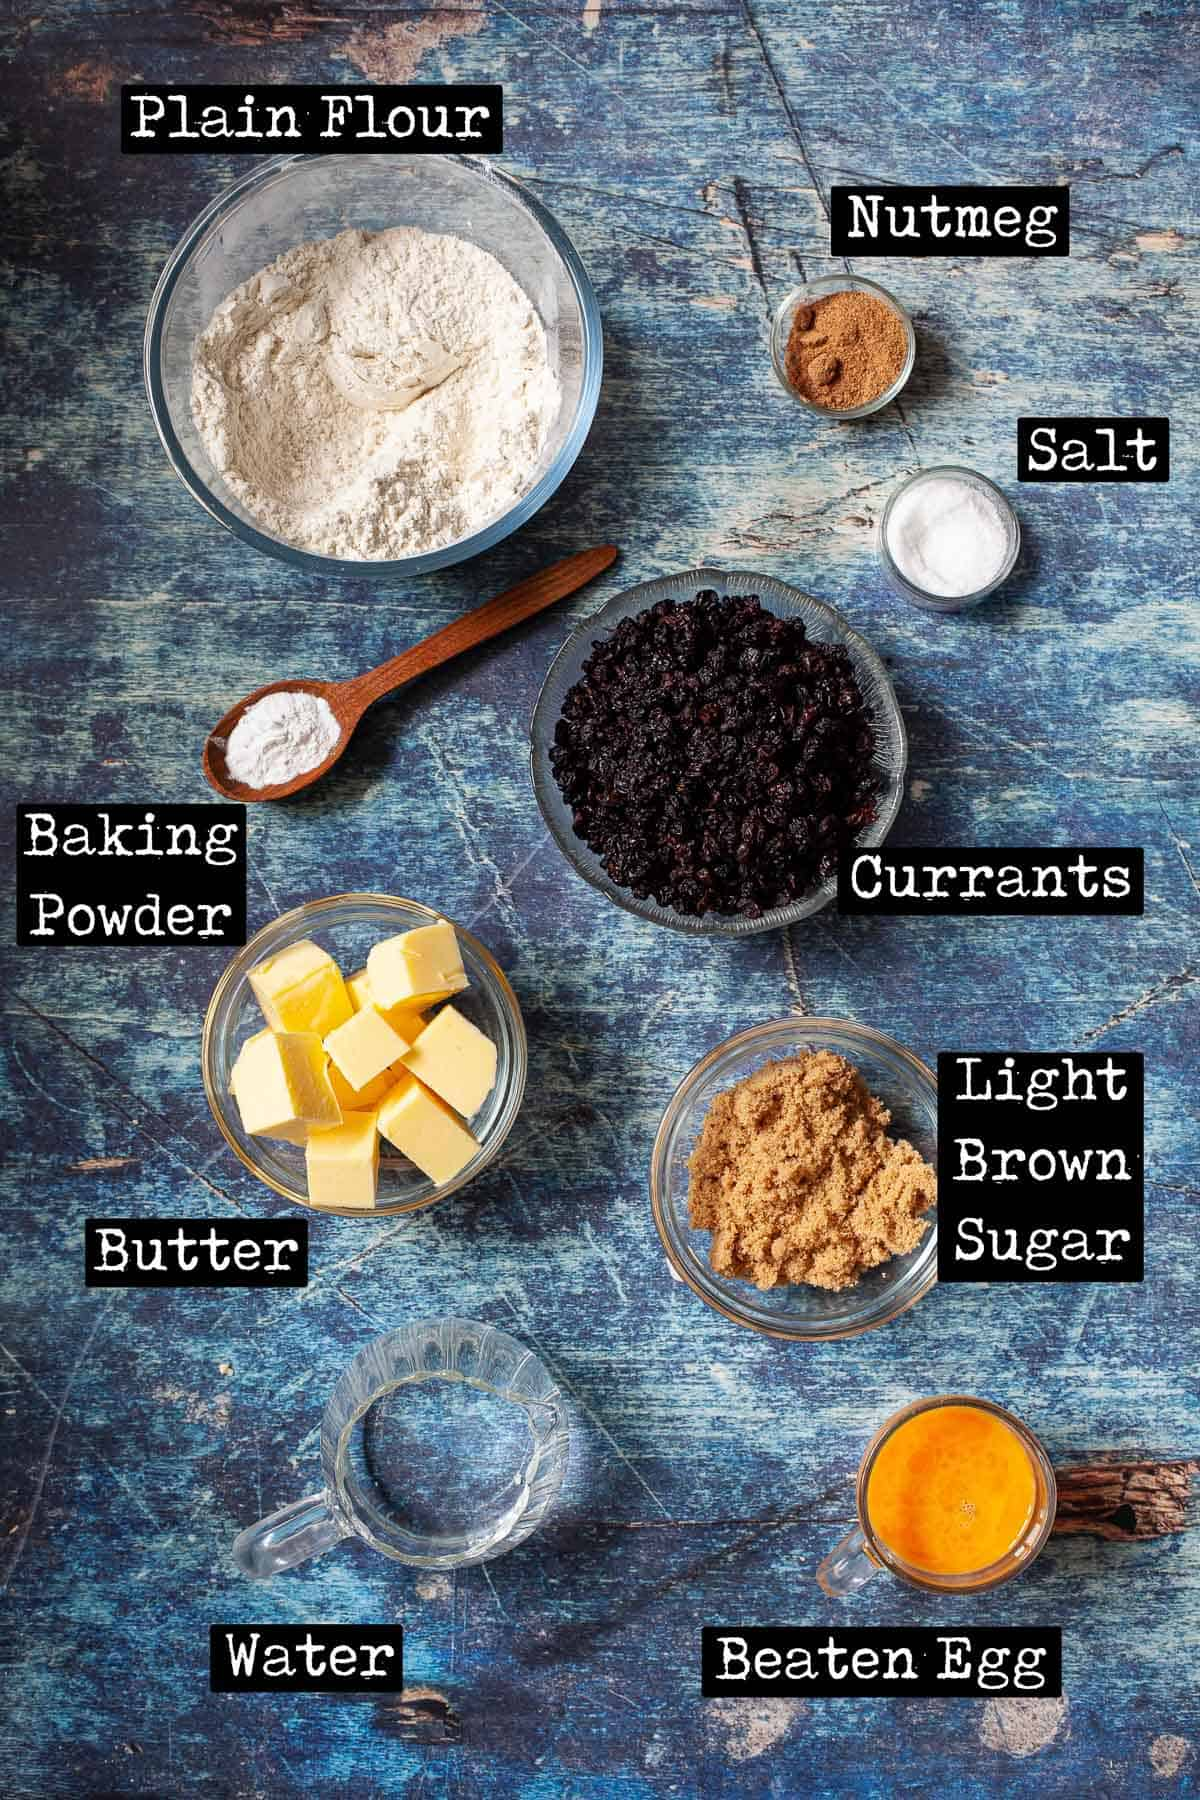 Ingredients for currant pastries with text overlay